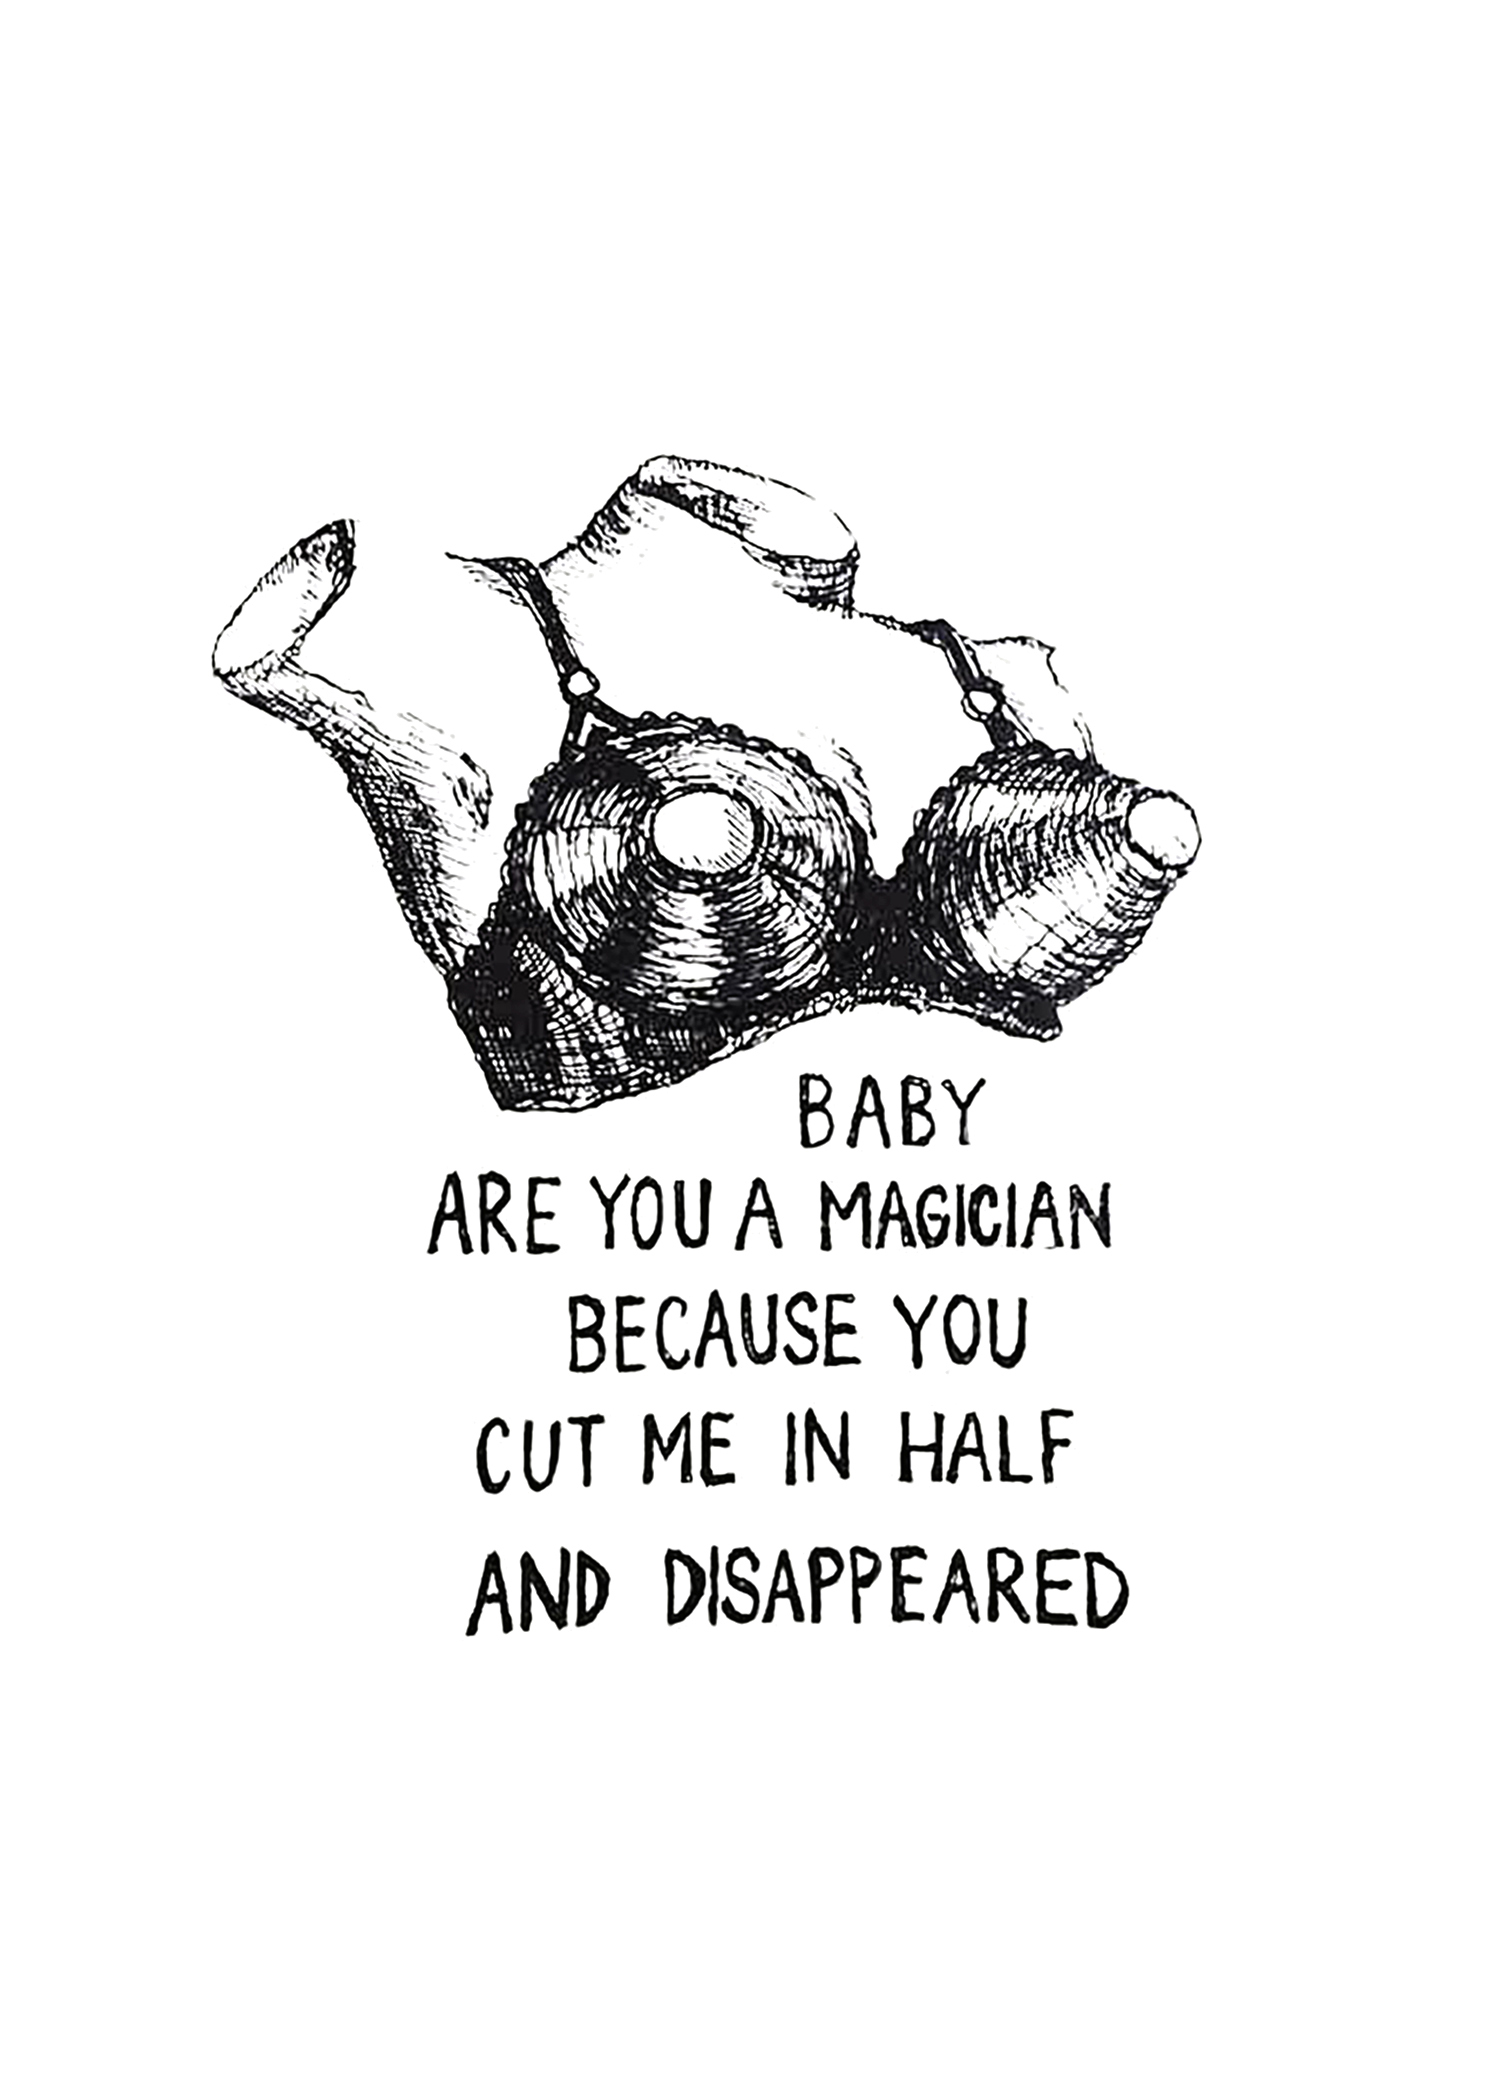 BABY ARE YOU A MAGICIAN_WEB.jpg